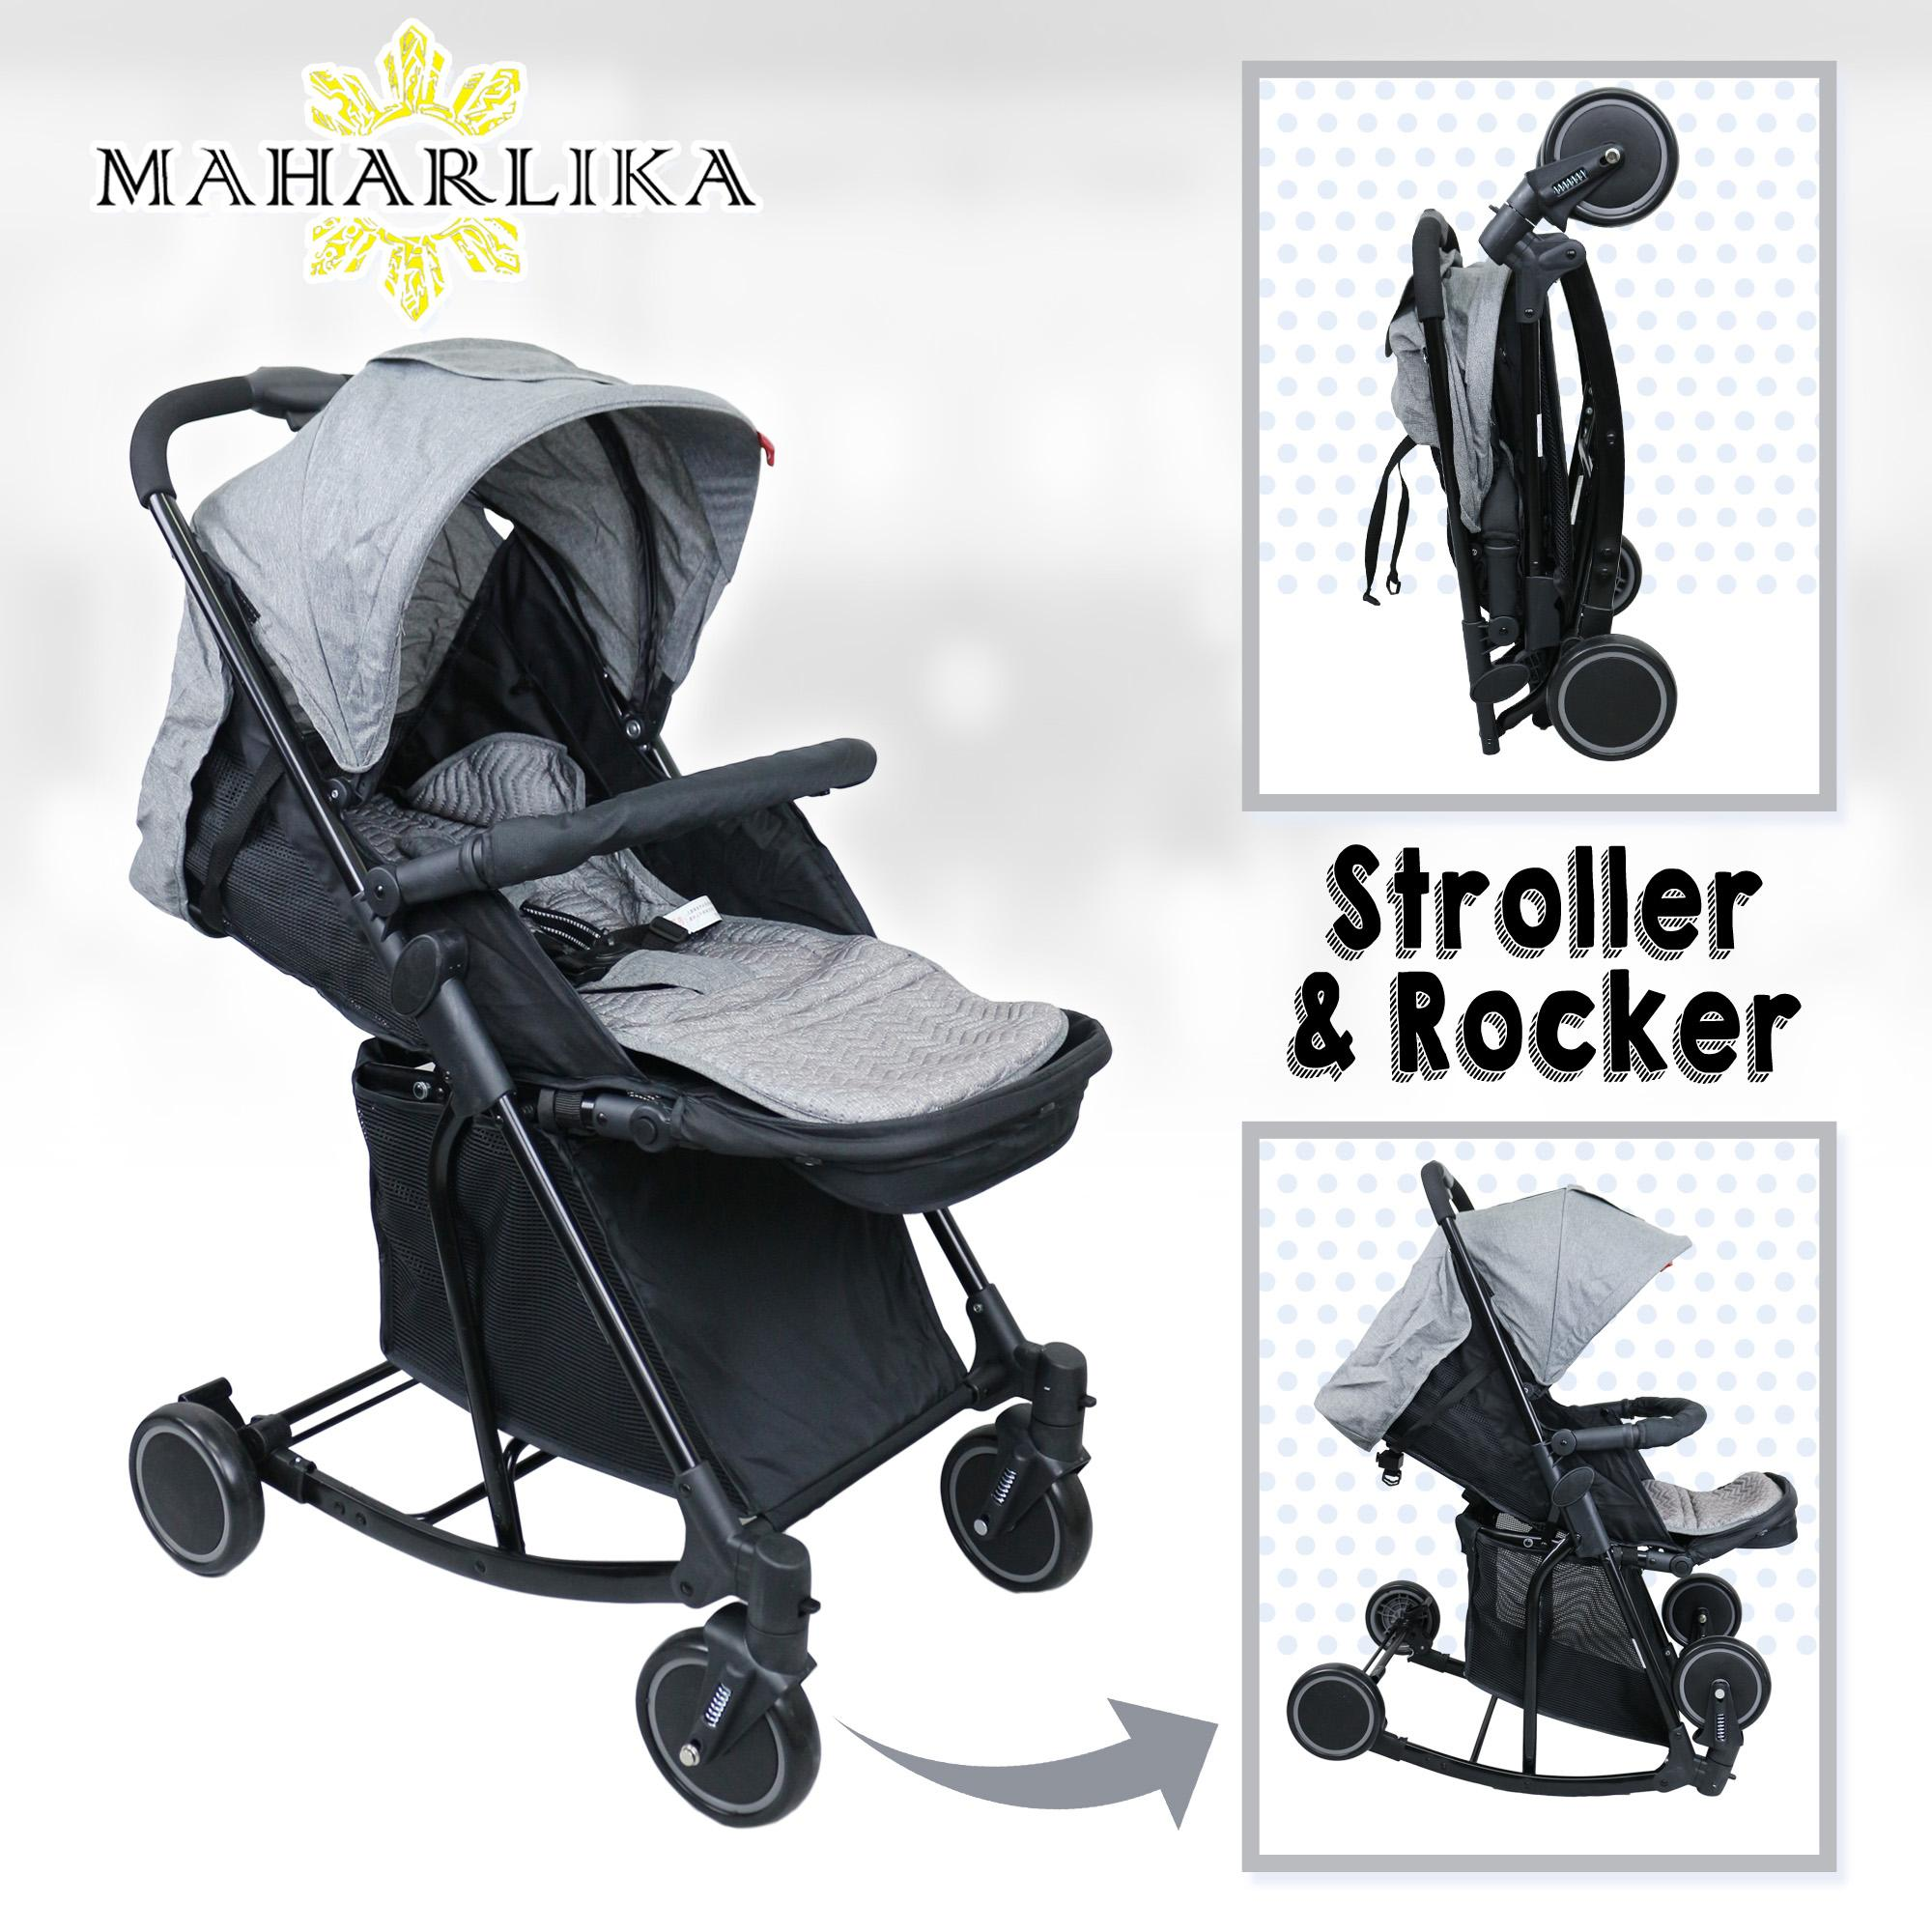 aeb80172edb91 MK Folding Convertible baby stroller rocker for baby 0 to 3 years old GREY  T609